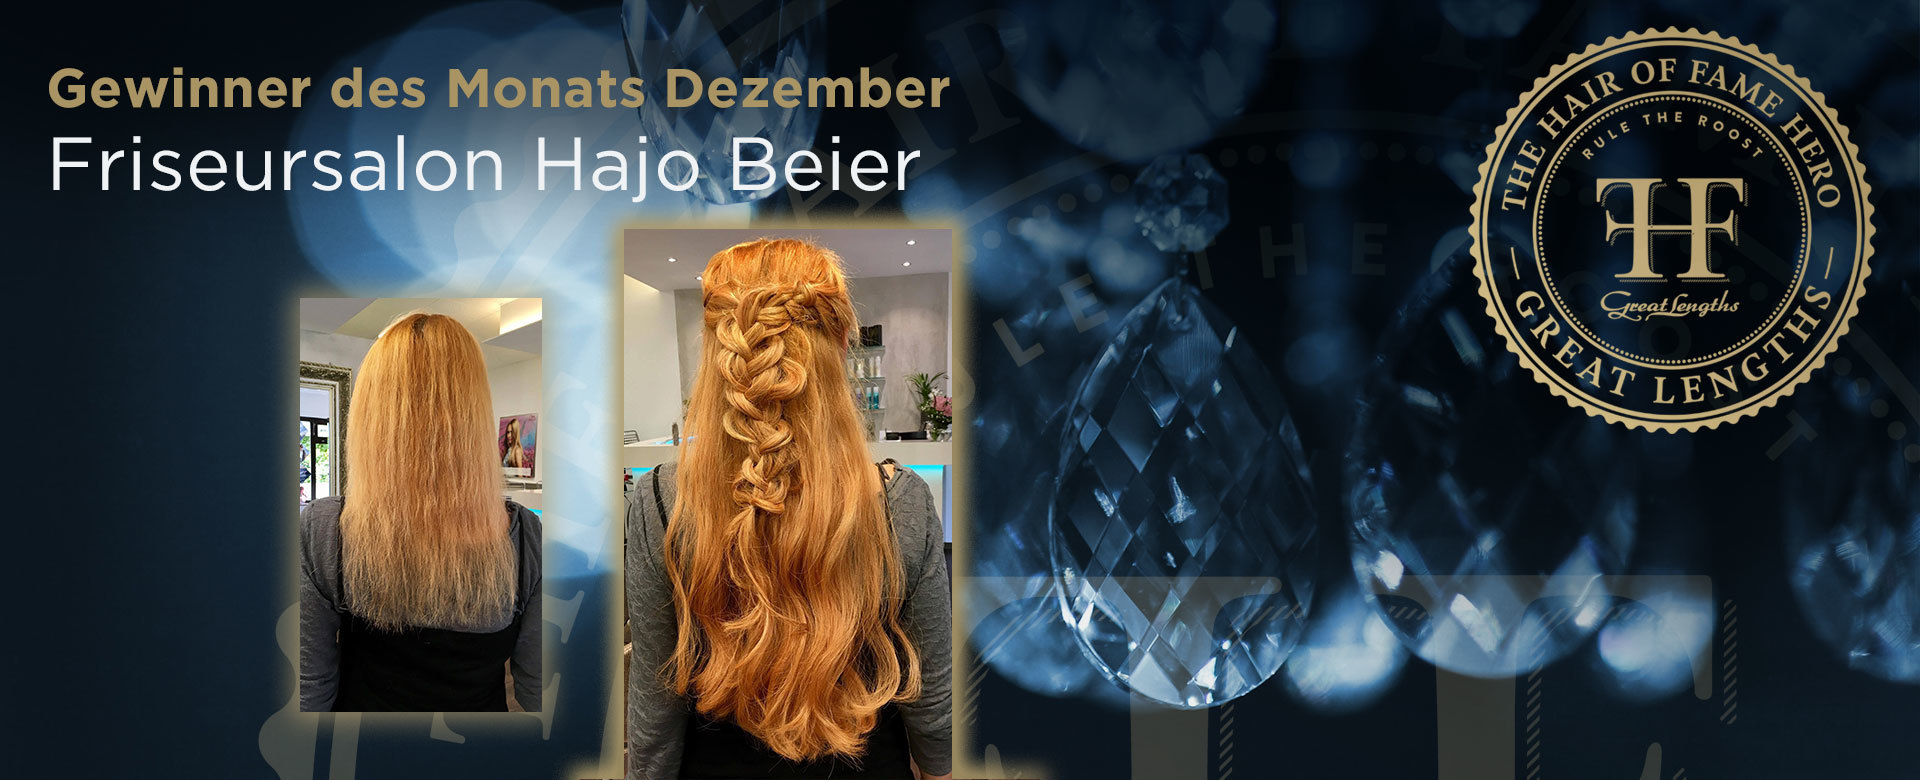 Hair-of-Fame Hero Monat Dezember 2017 (© Great Lengths)